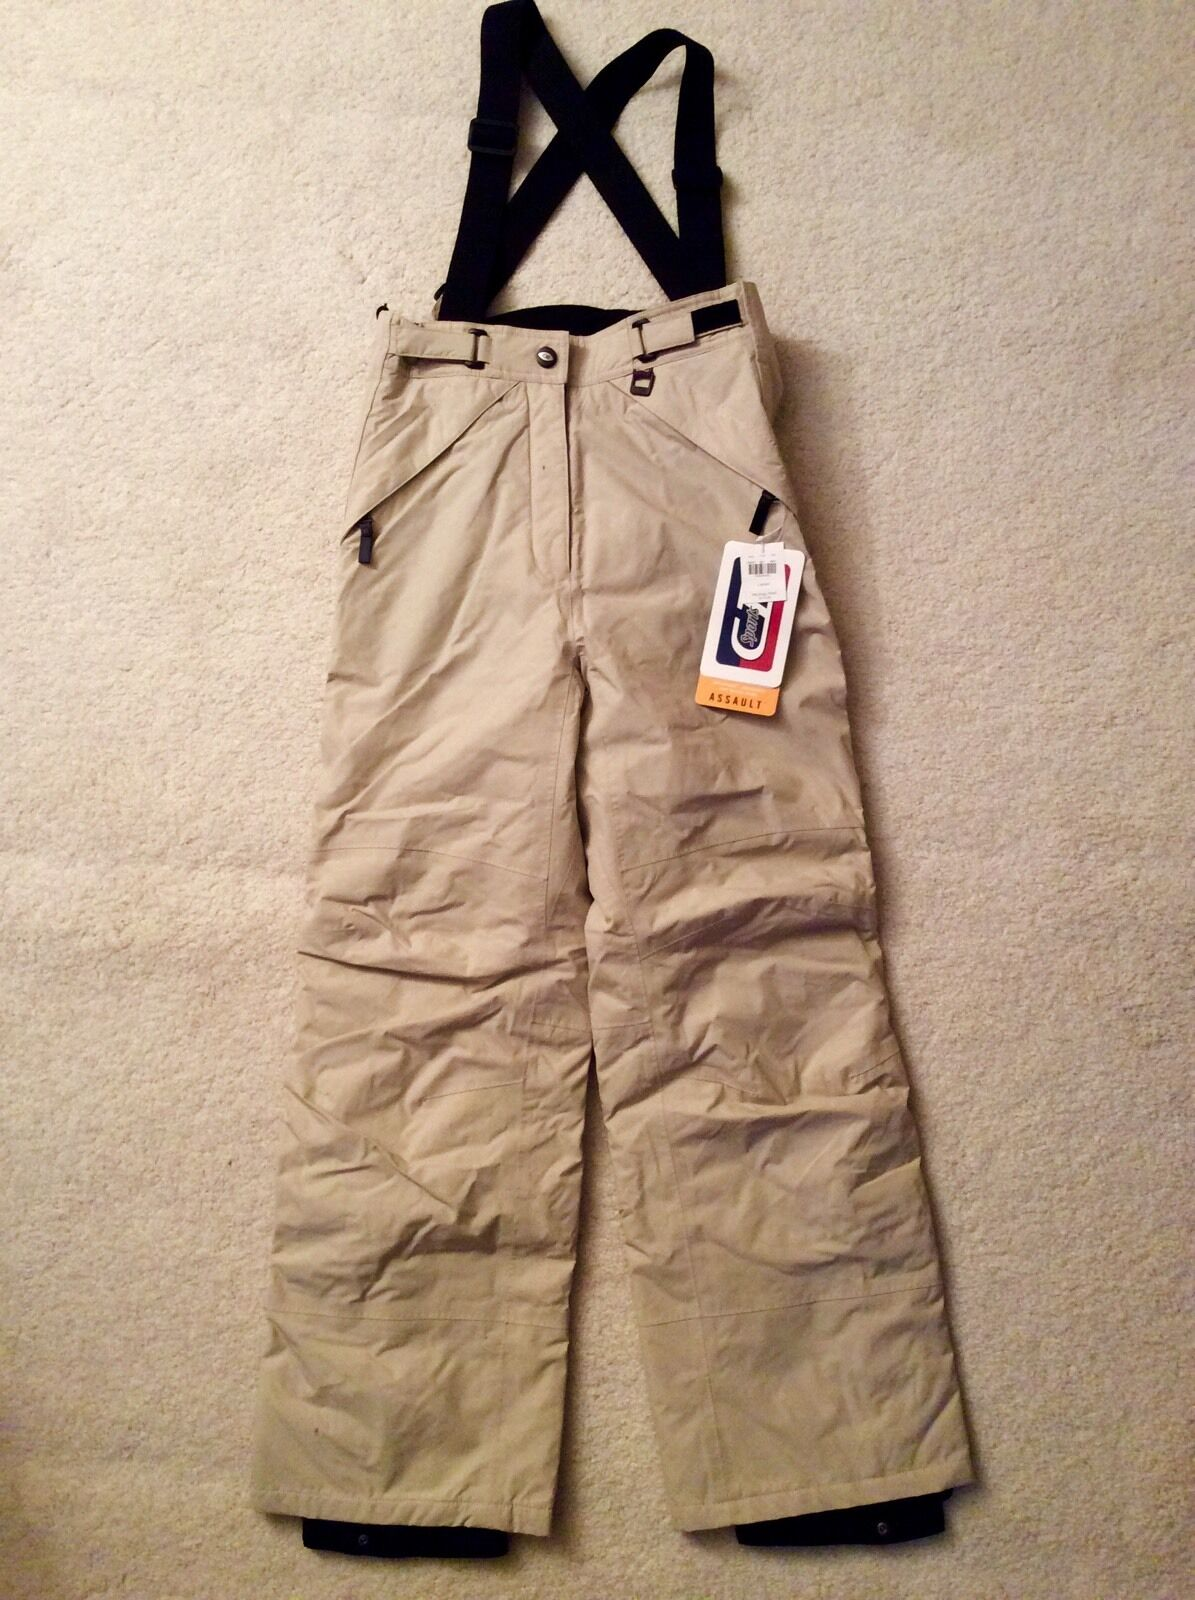 NWT Top Of The Line CB SPORTS Women's Beige Ski Snowboard Insulated Pants Size M